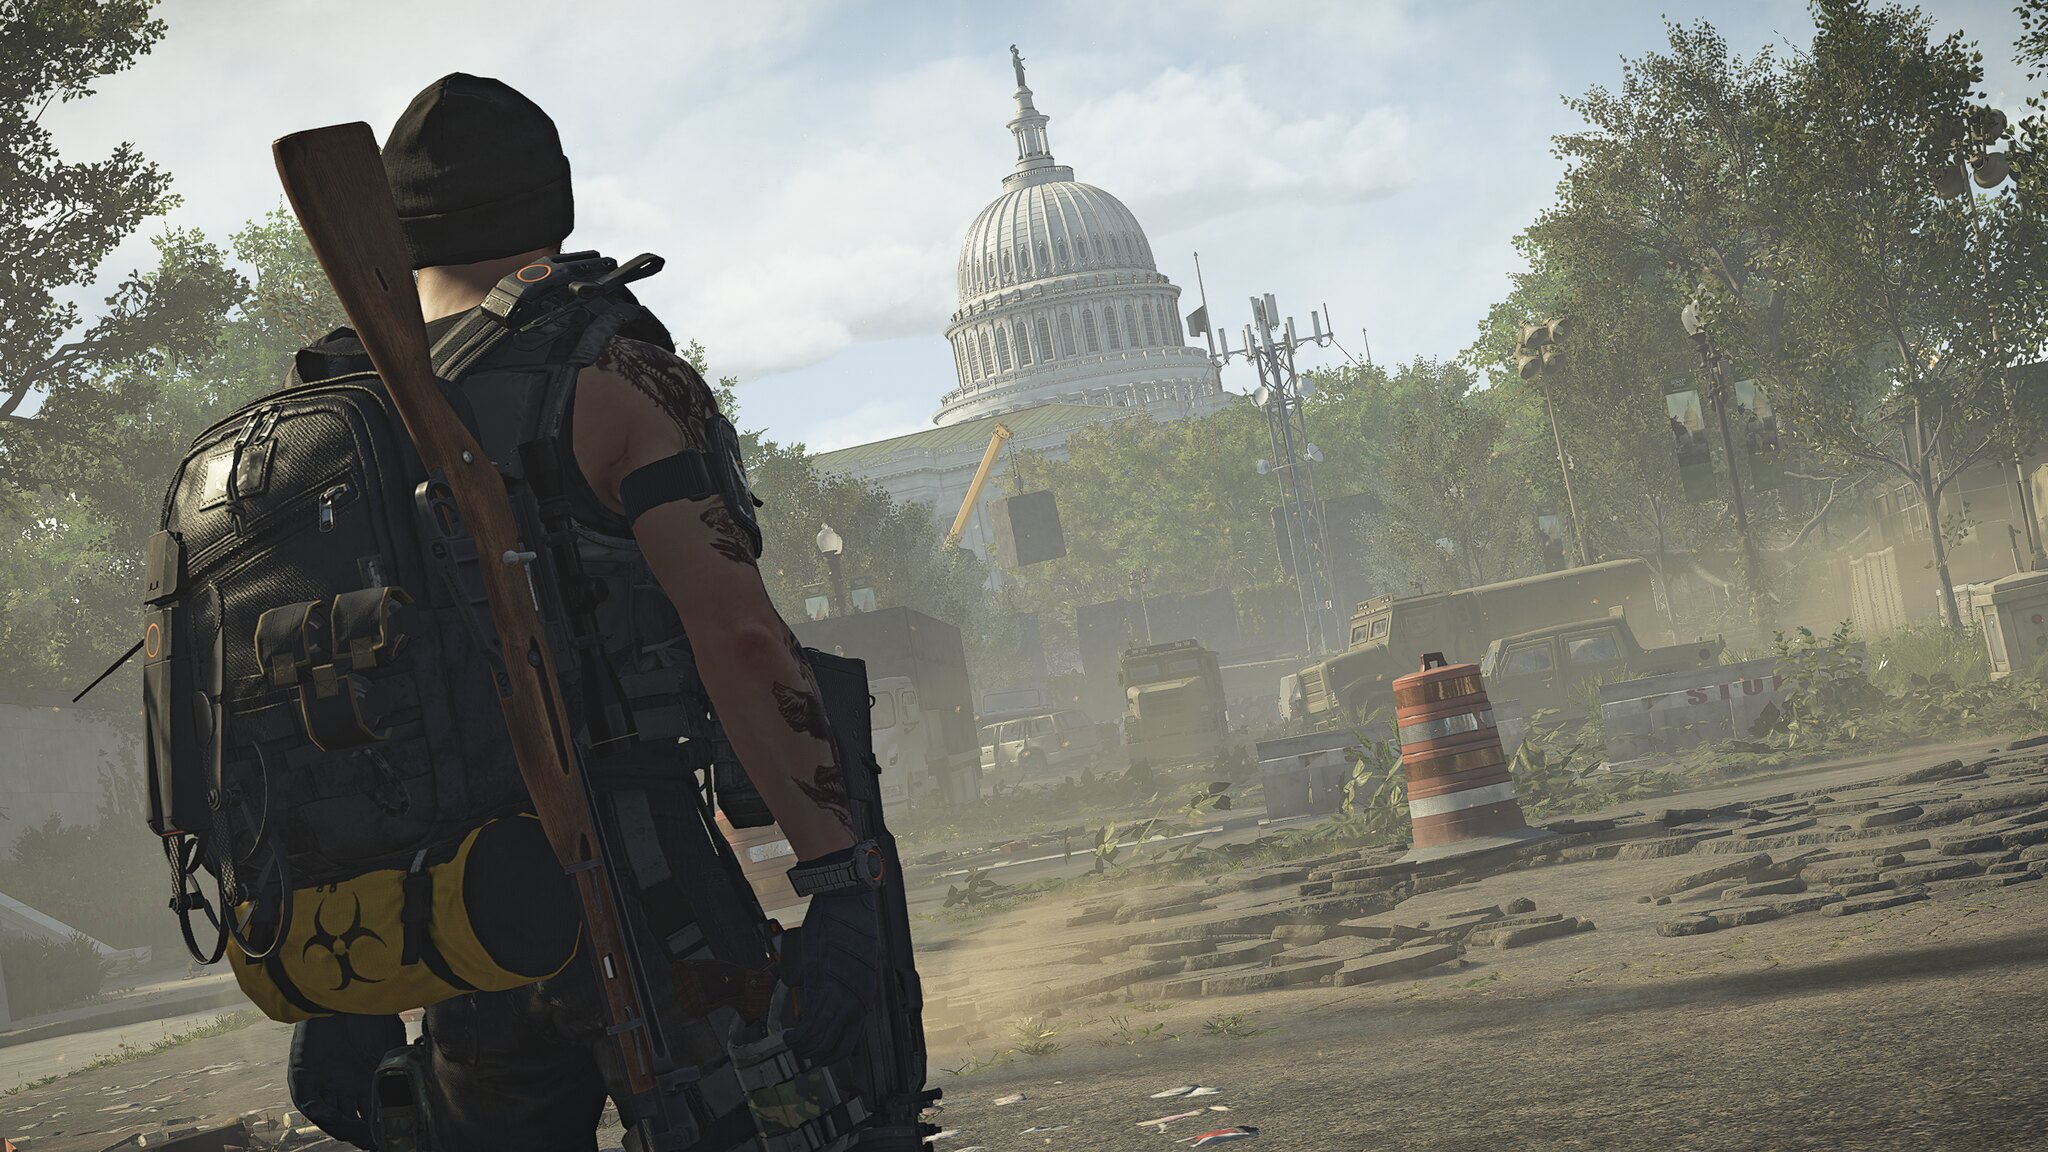 46353675374_52d72067c5_k.jpg - Tom Clancy's The Division 2